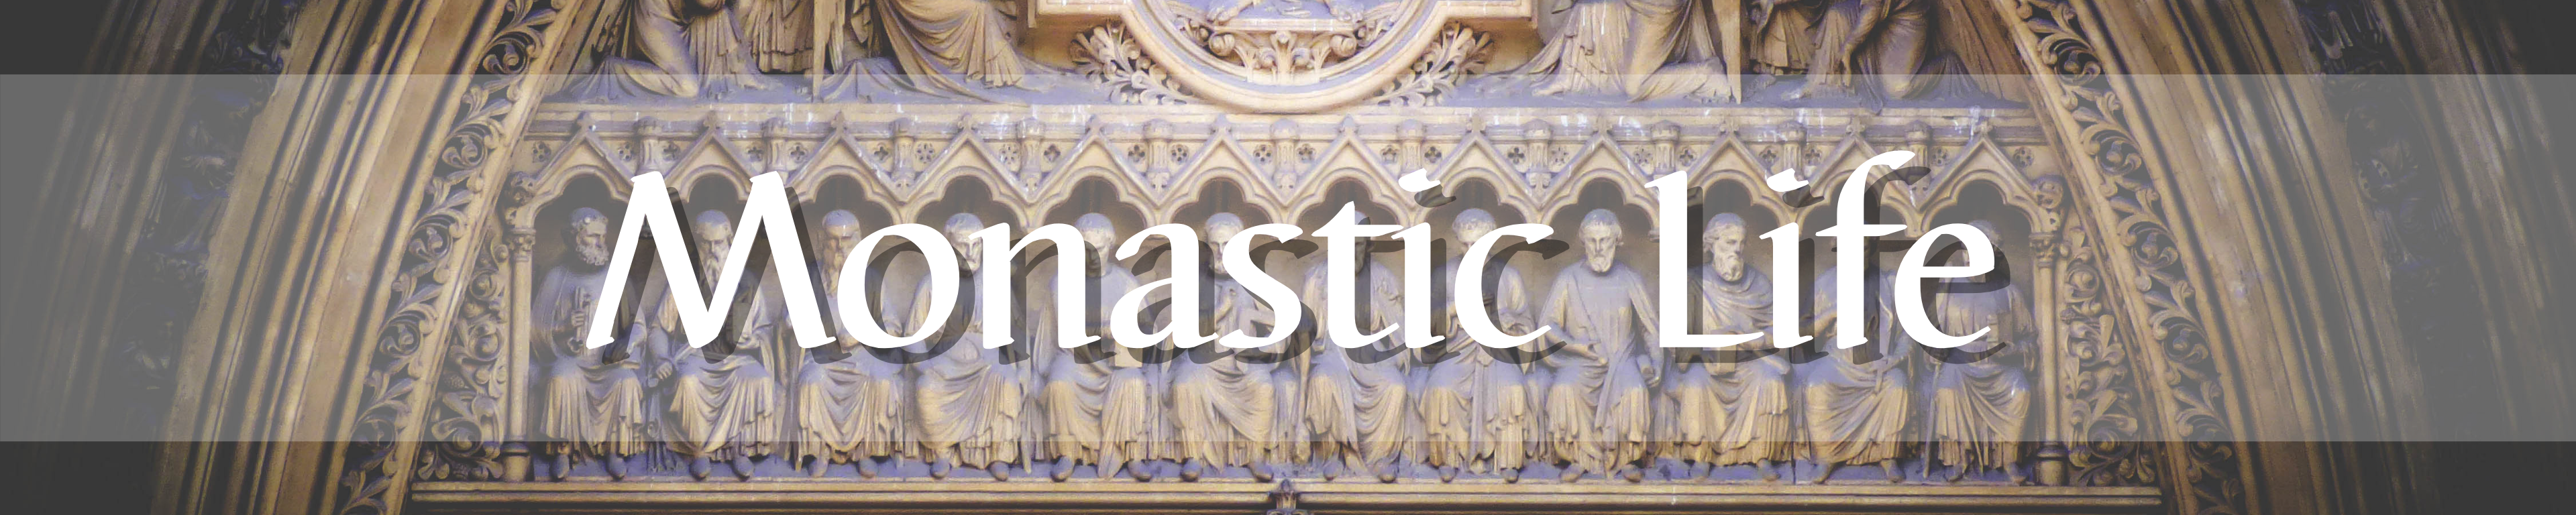 Cover image of Monastic Life: the title of the series, in white text, on a background image of stone carving on the exterior of a cathedral